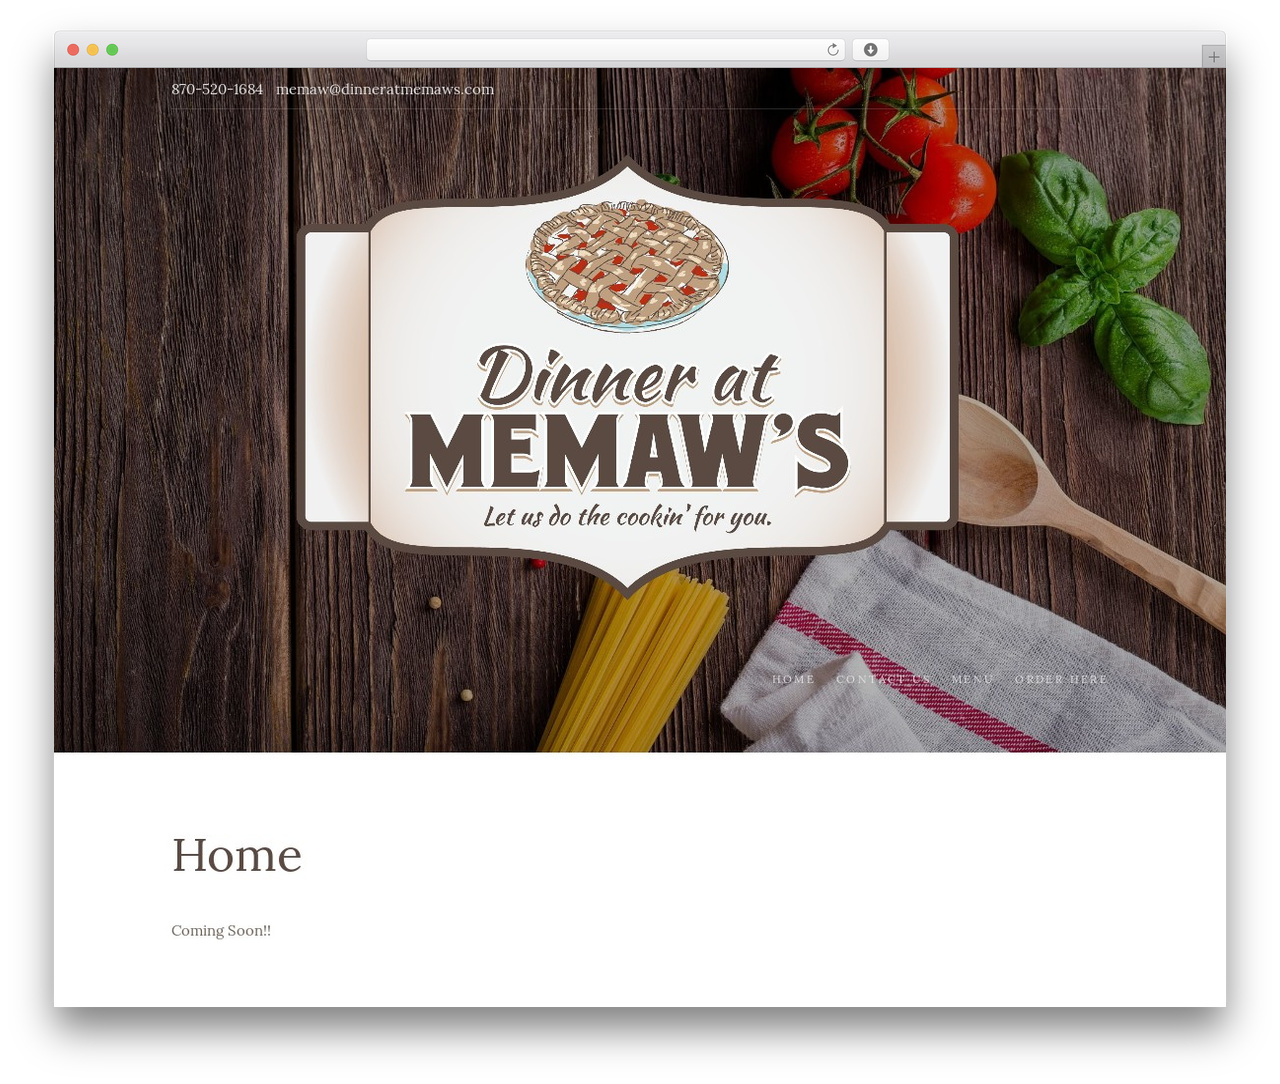 Food Express WordPress template free download - dinneratmemaws.com